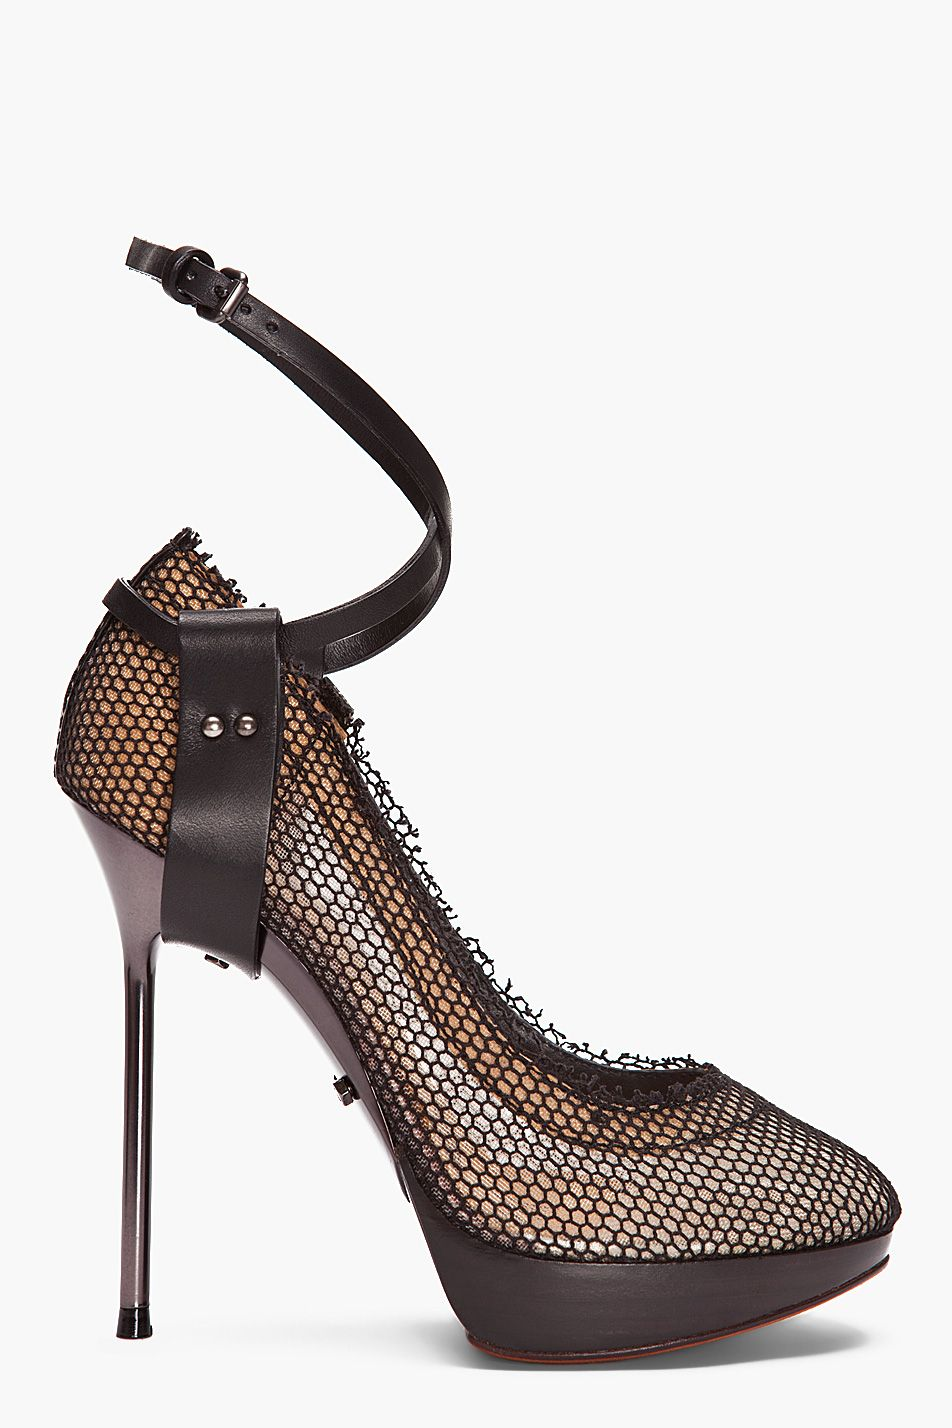 outlet in China outlet discount Lanvin Snakeskin Wrap-Around Pumps EqnlY7